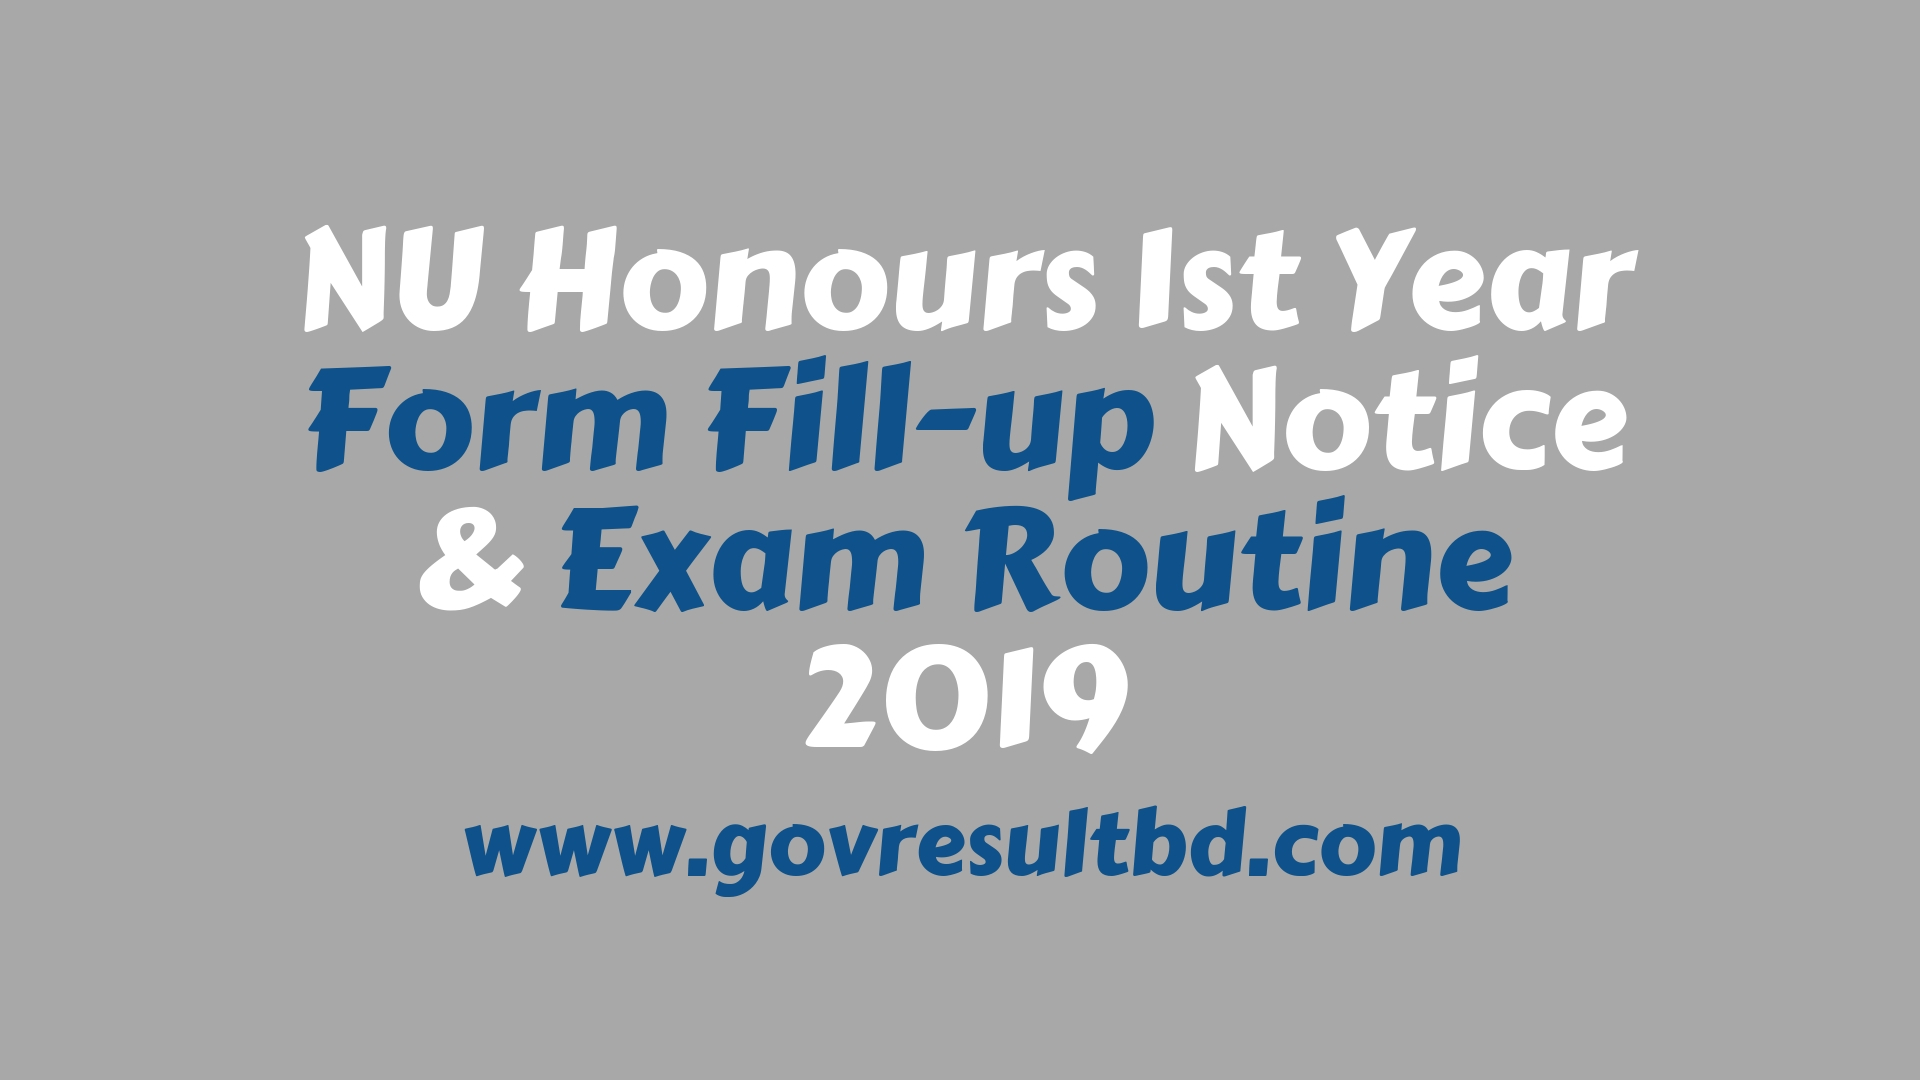 NU Honours 1st Year Form Fill-up Notice & Exam Routine 2019